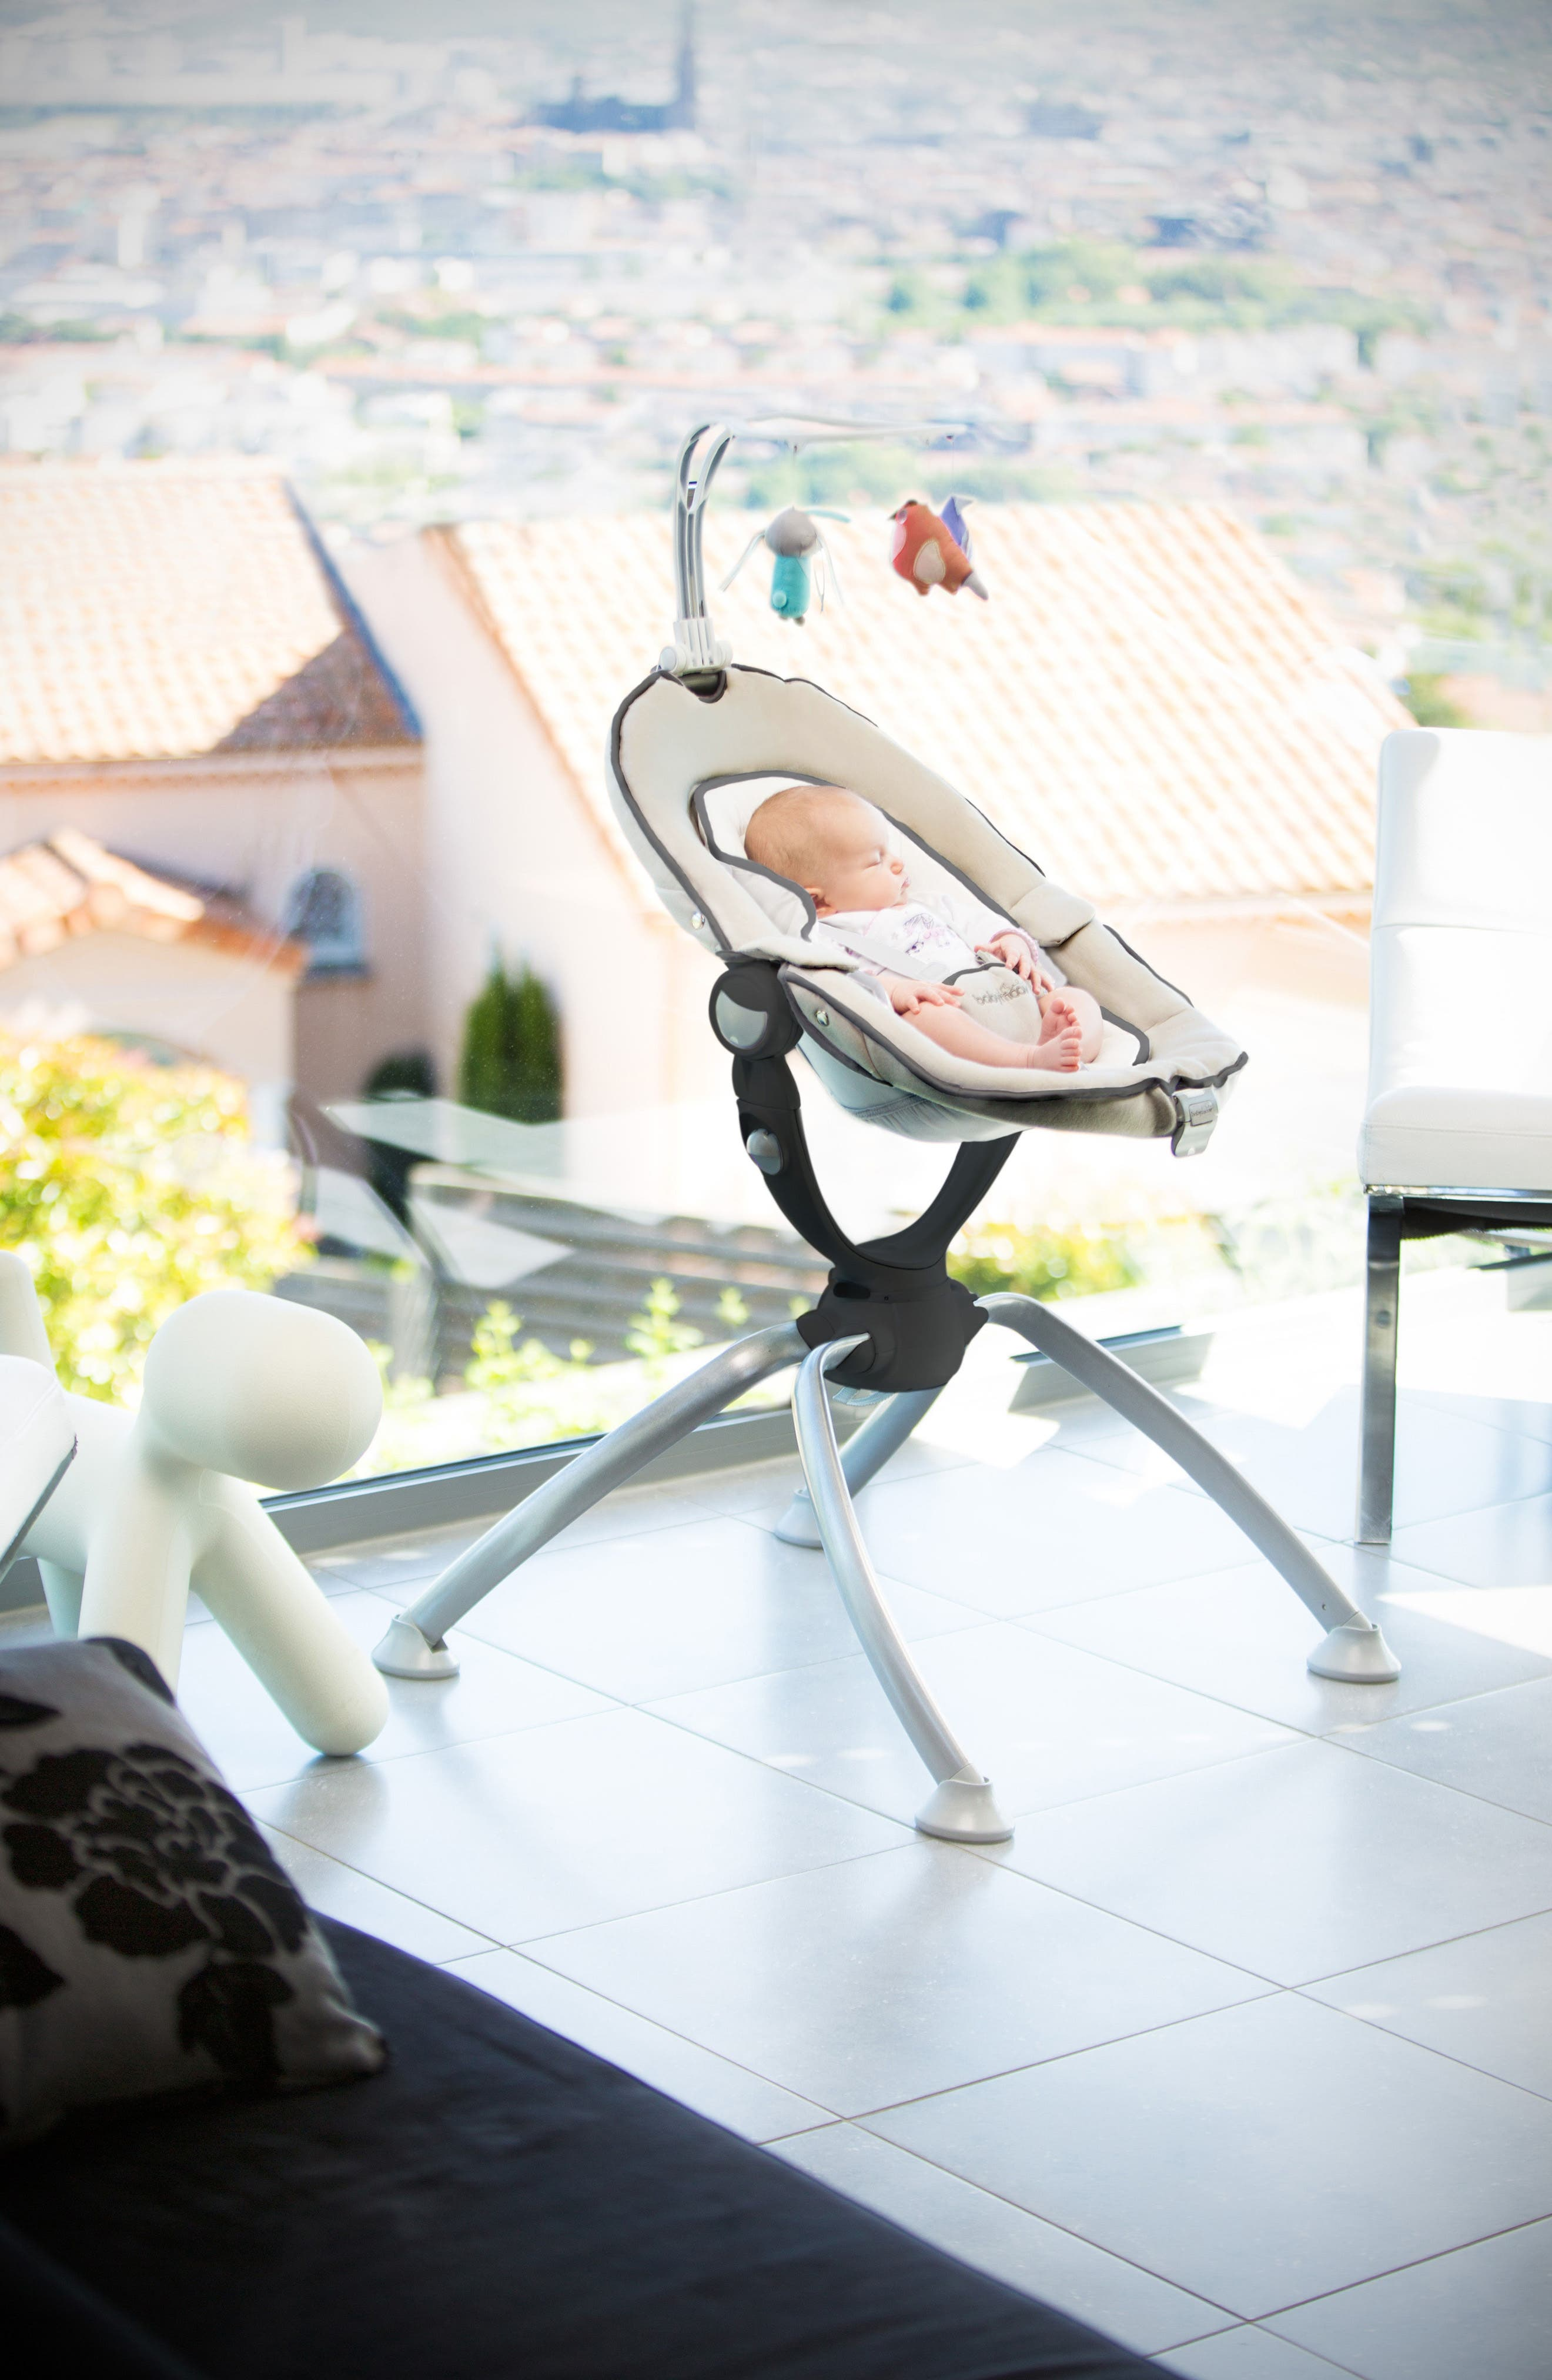 BABYMOOV,                             Swoon Up Baby Bouncer Seat,                             Alternate thumbnail 6, color,                             040